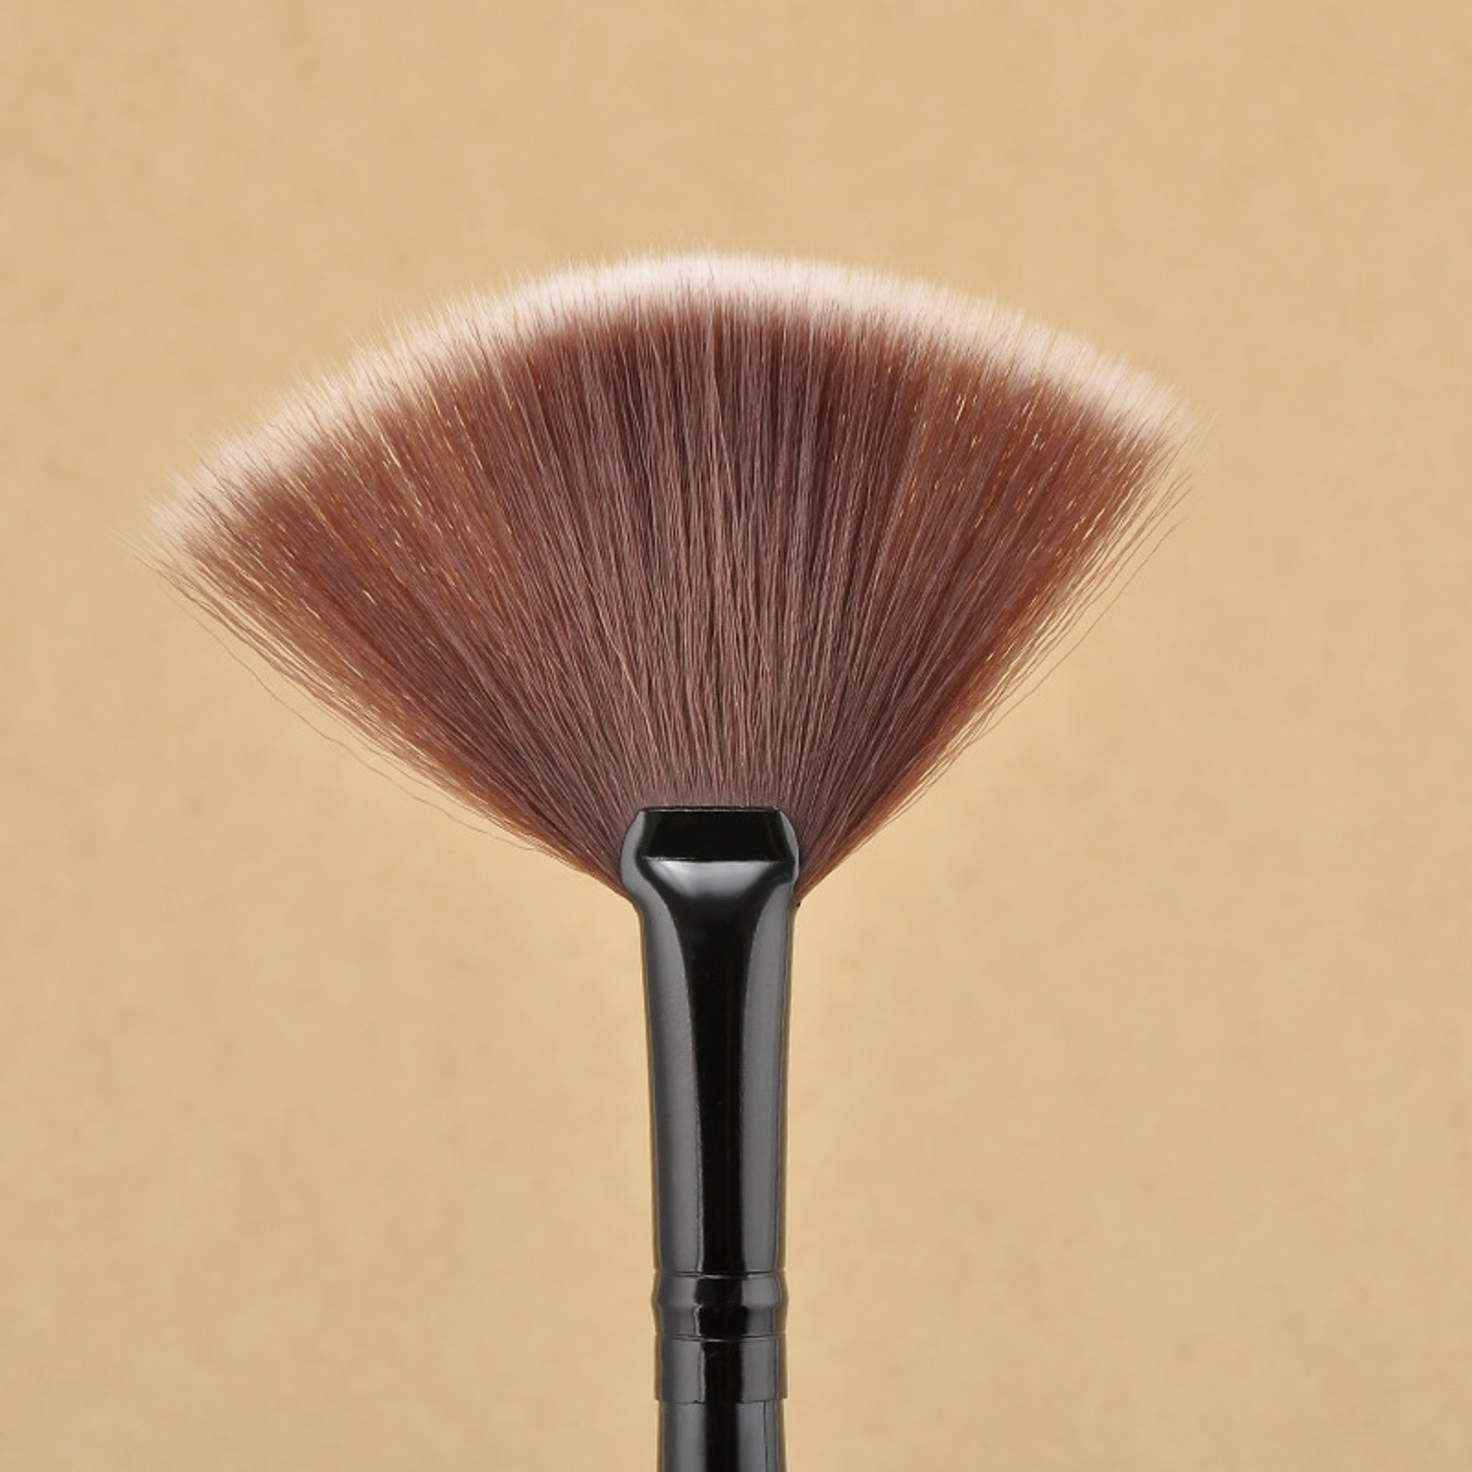 New Pro Fan Shape Makeup Brushes Cosmetic Brush Blending